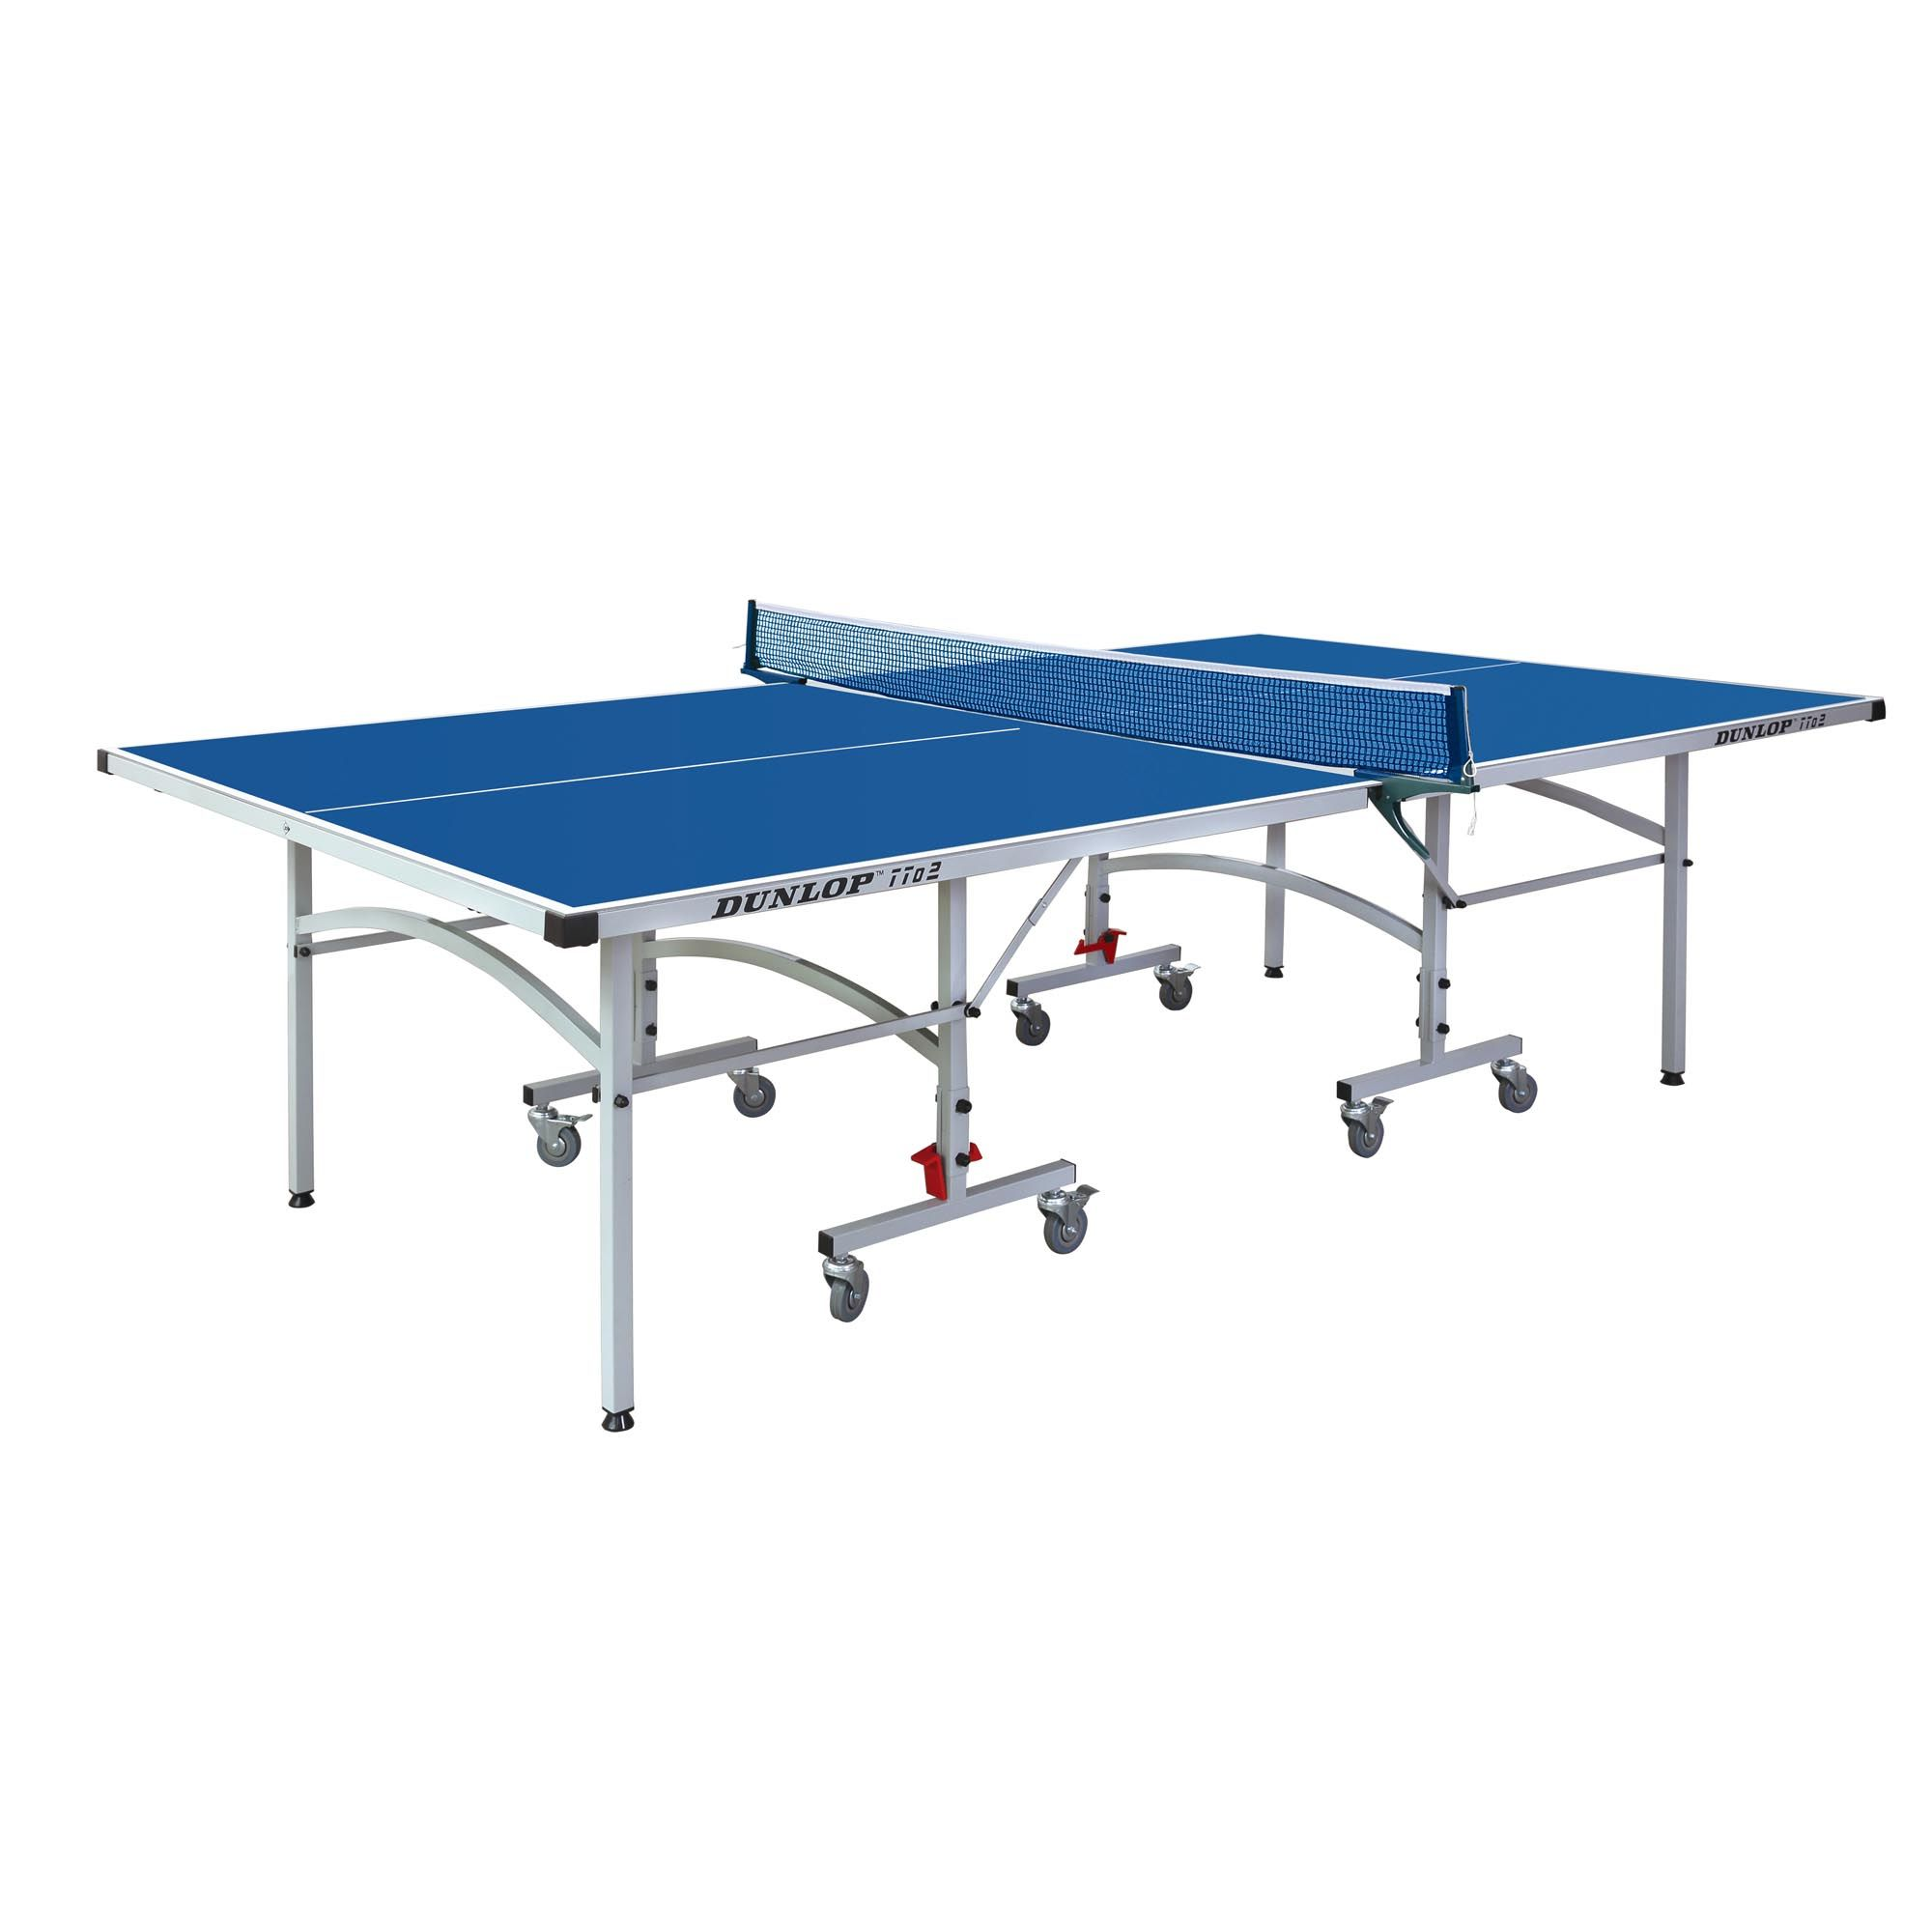 Dunlop tto2 outdoor table tennis table - Weatherproof table tennis table ...